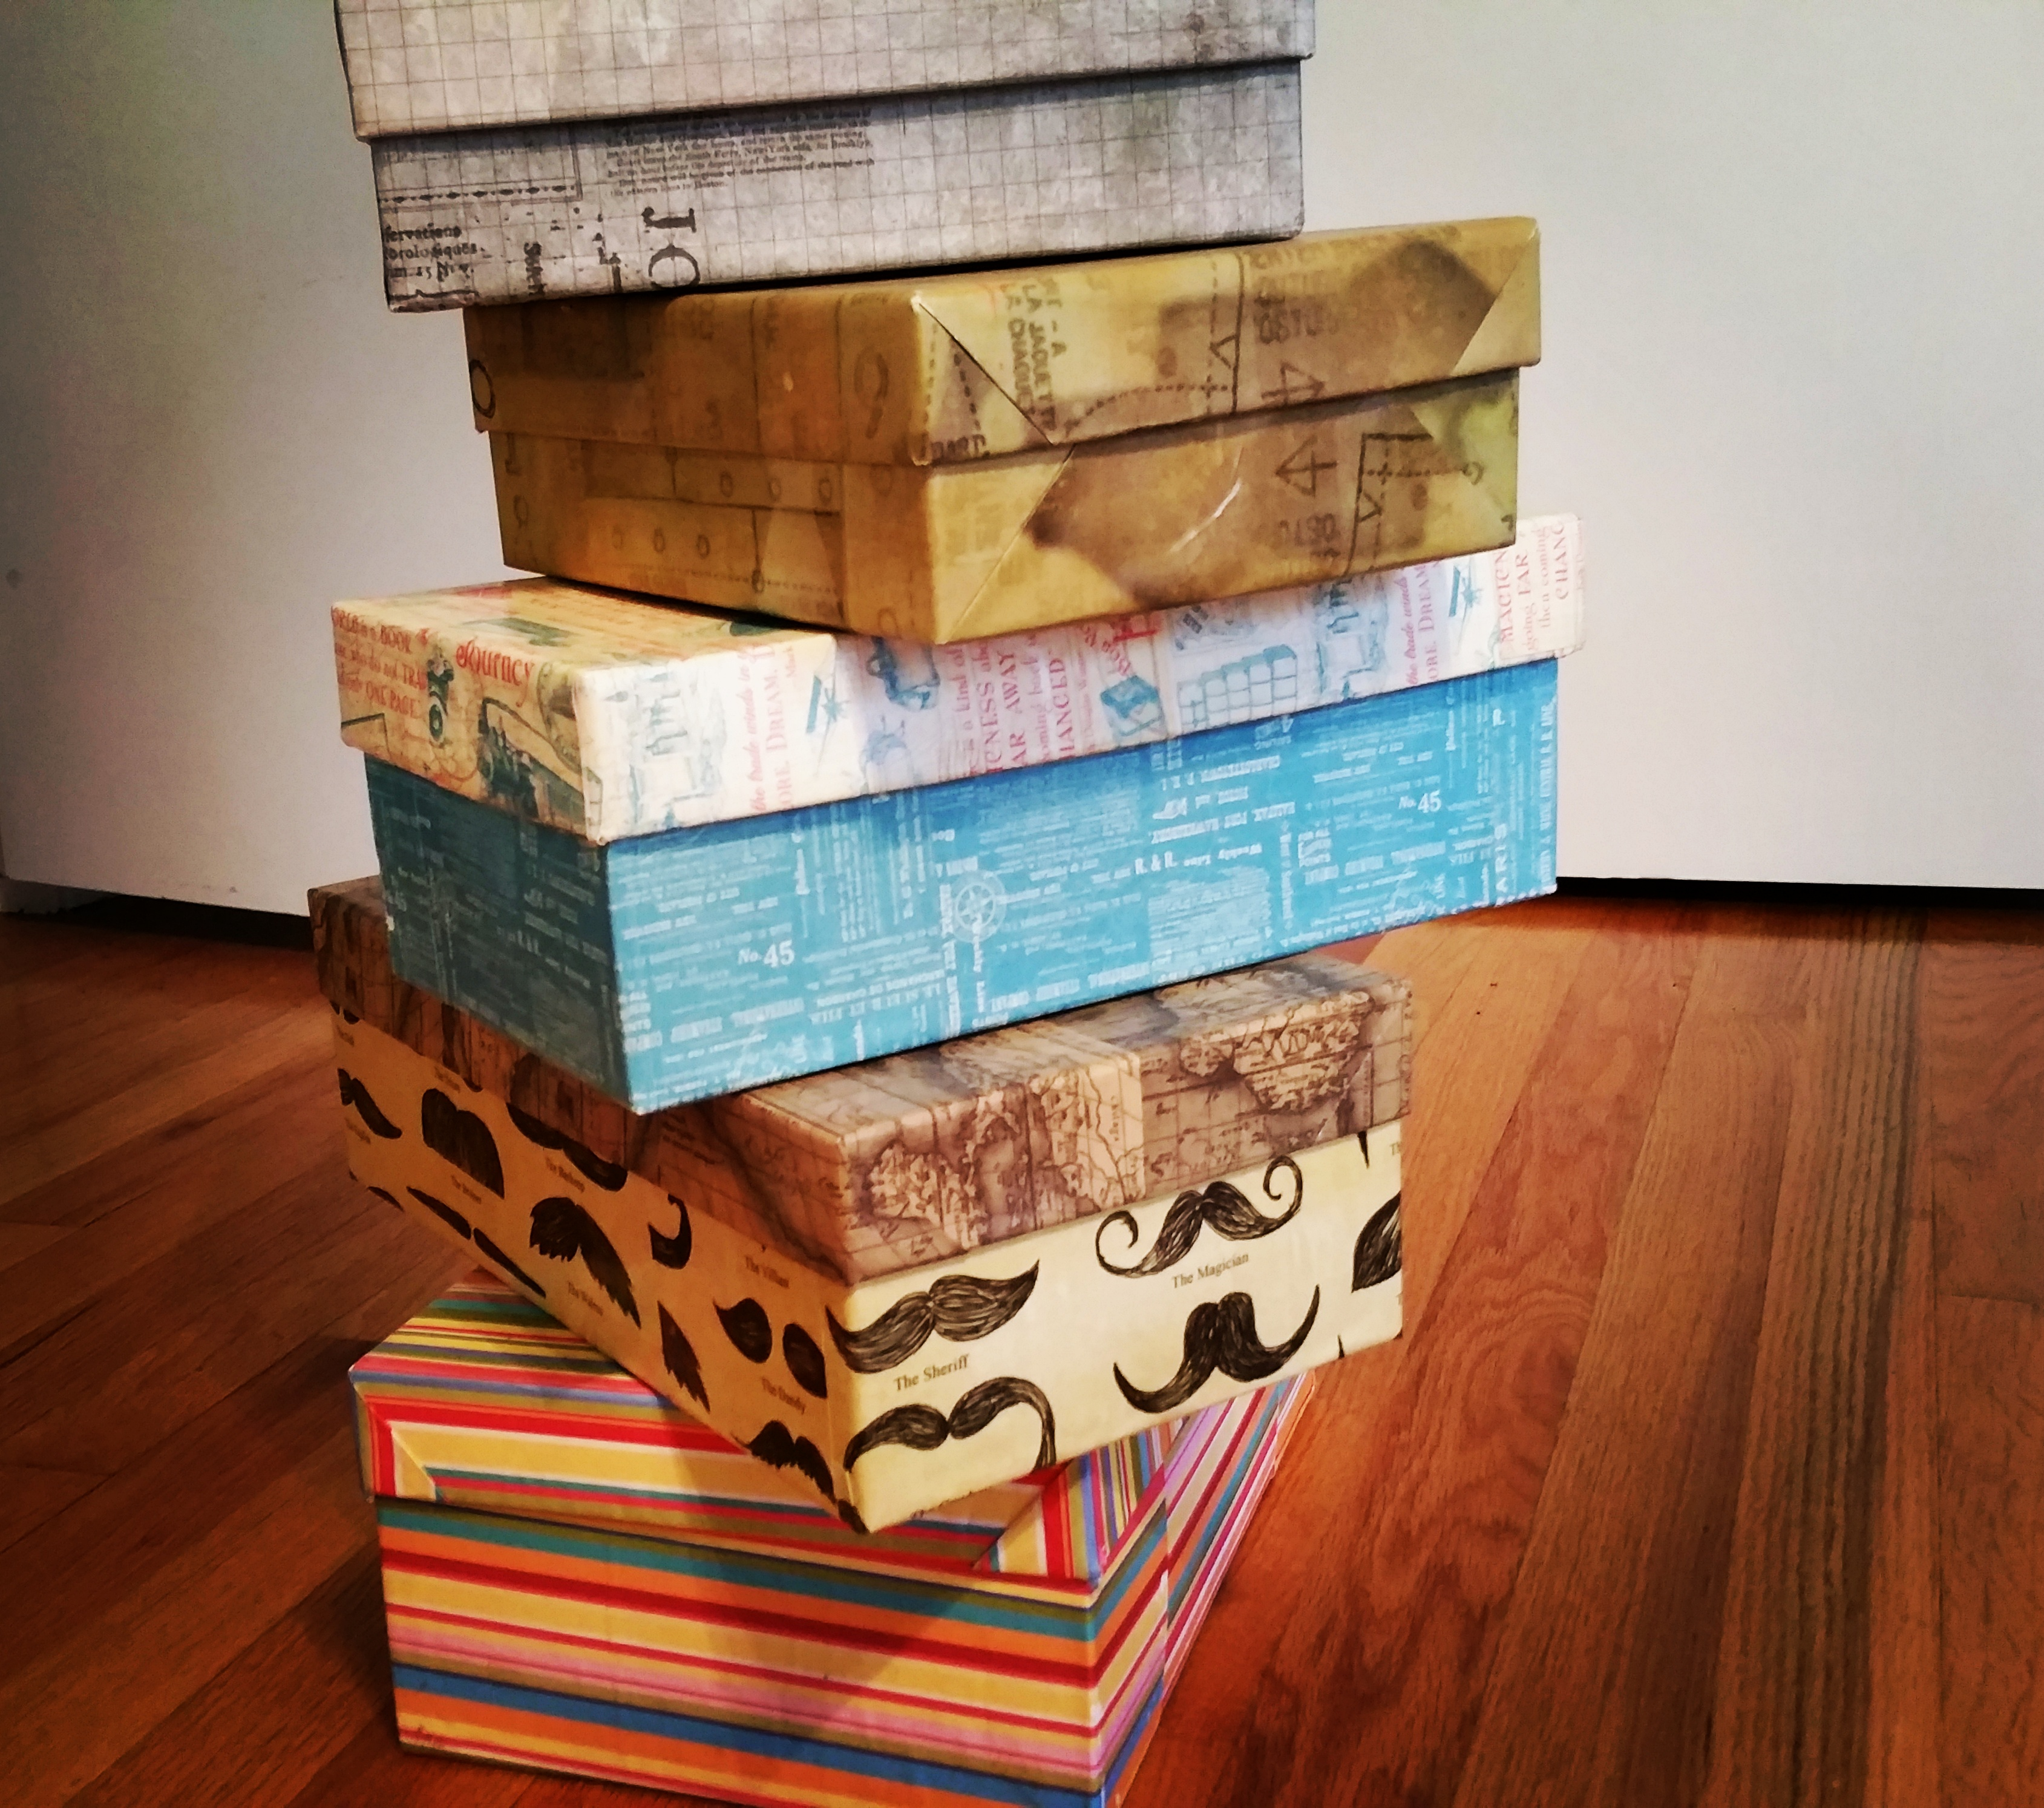 More covered boxes!